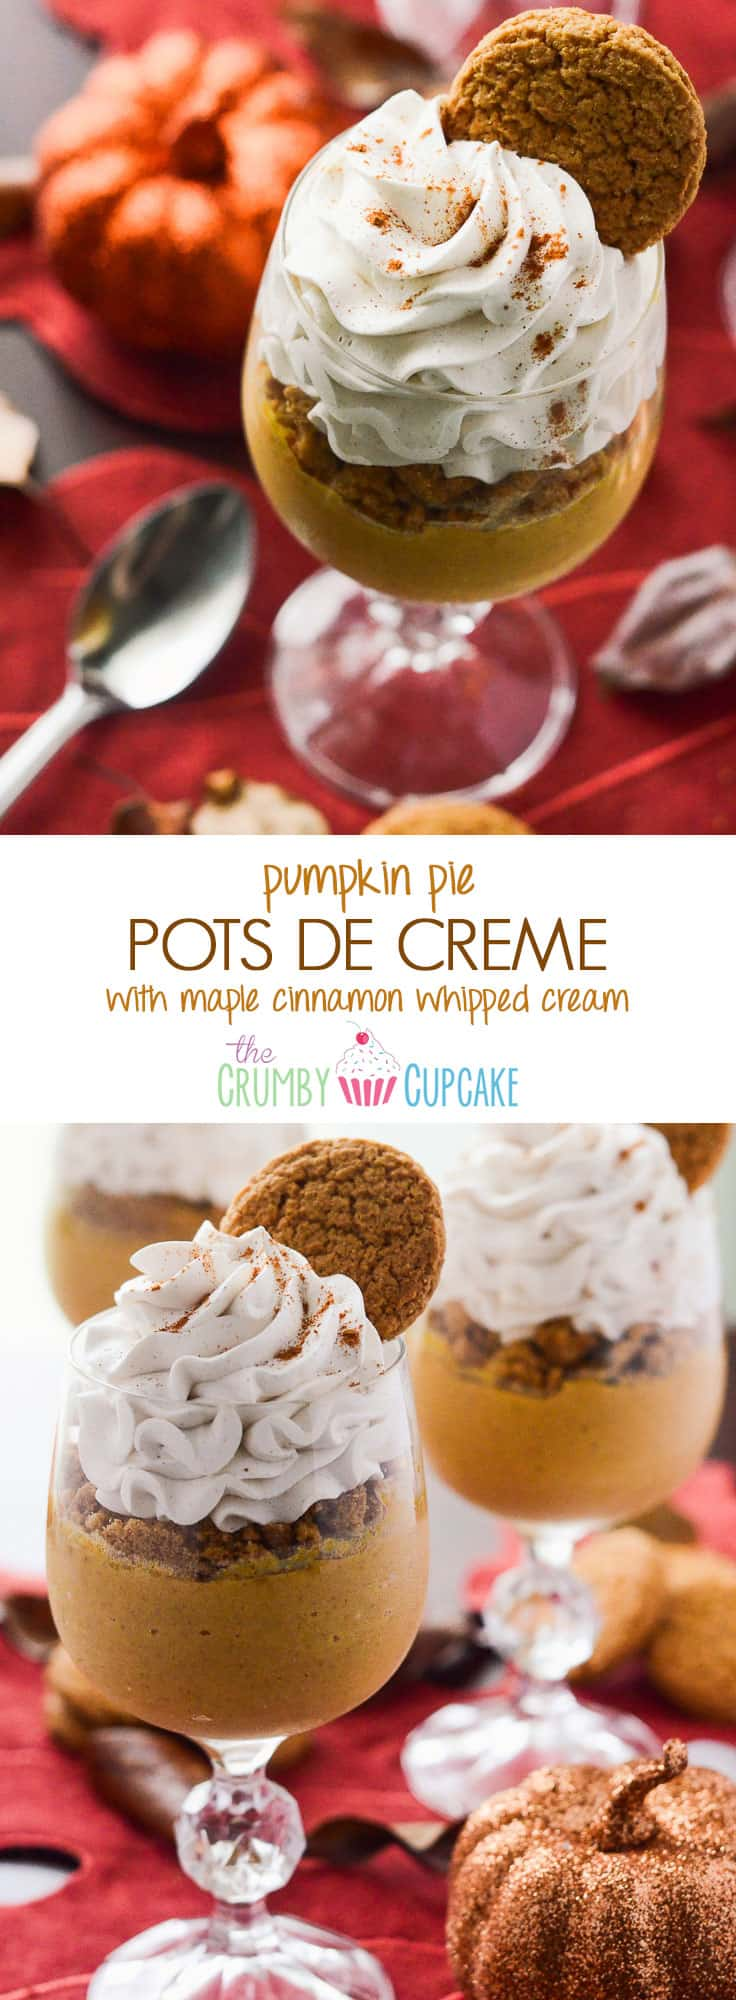 Pumpkin Pie Pots de Creme: fall's favorite flavor, mixed up in a classic French dessert, and topped with crushed gingersnaps and a Maple Cinnamon Whipped Cream!